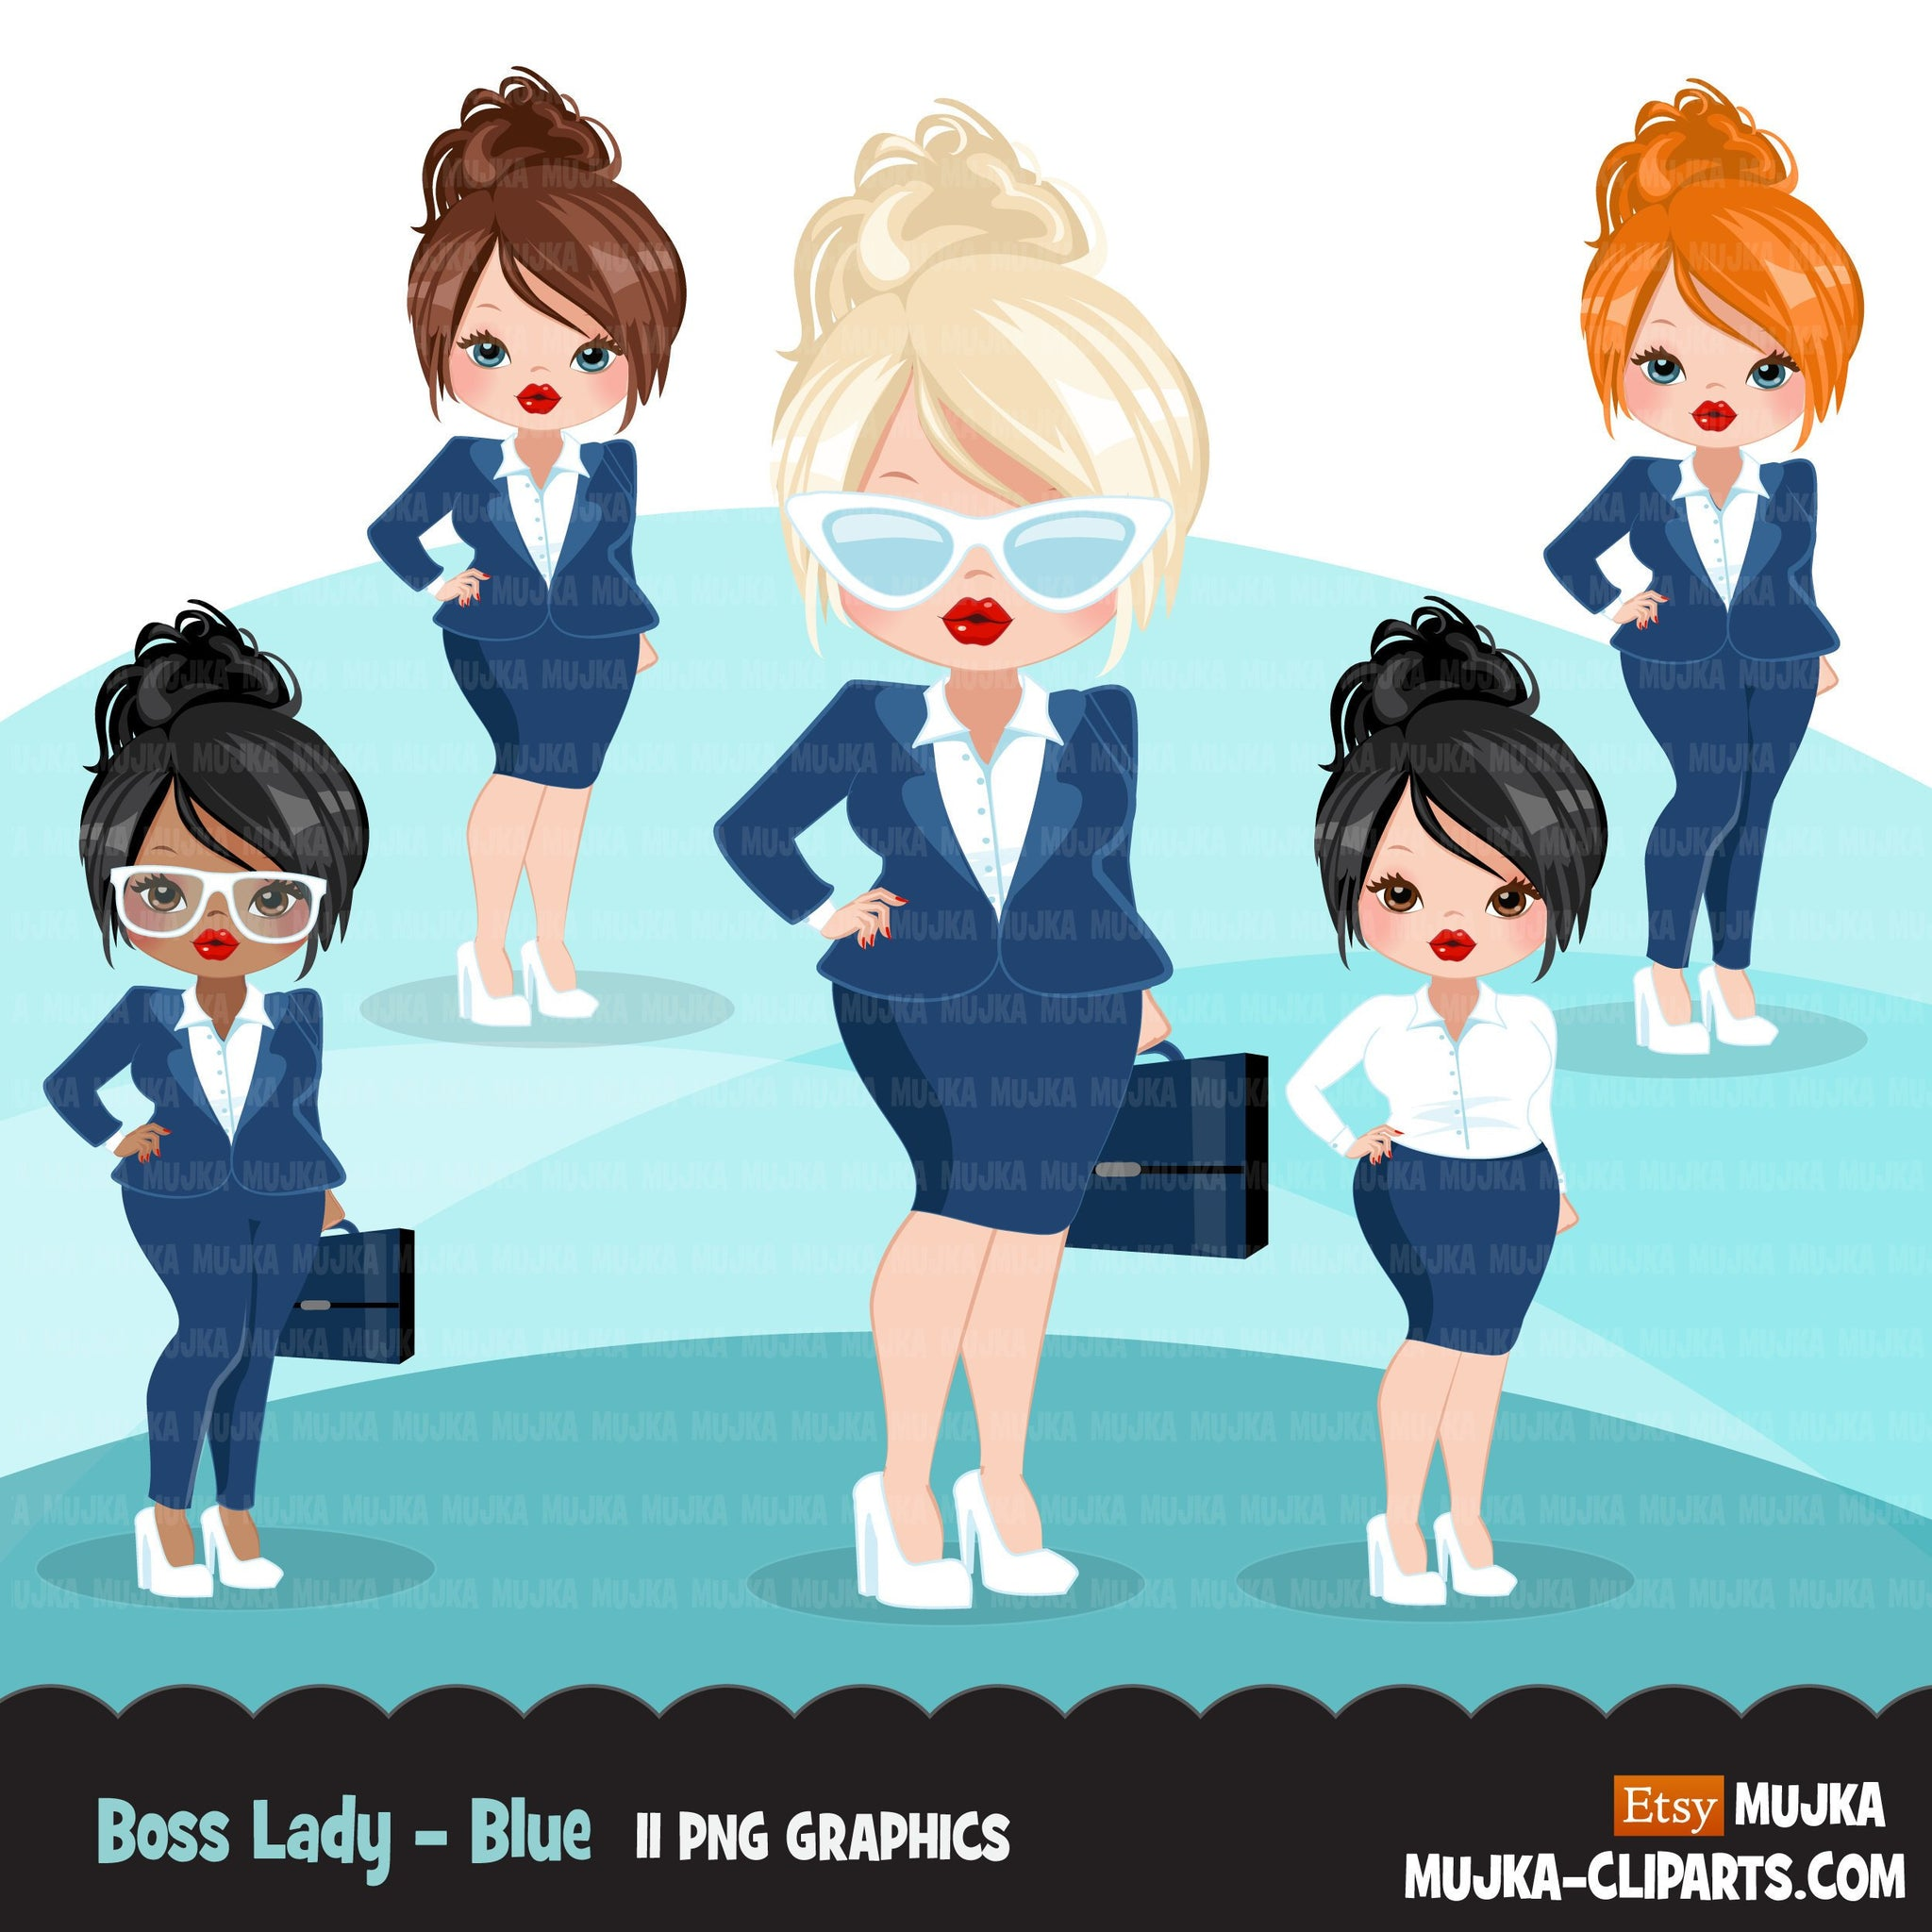 Business woman clipart with navy business suit, briefcase and glasses girl graphics, print and cut sublimation clip art, logo